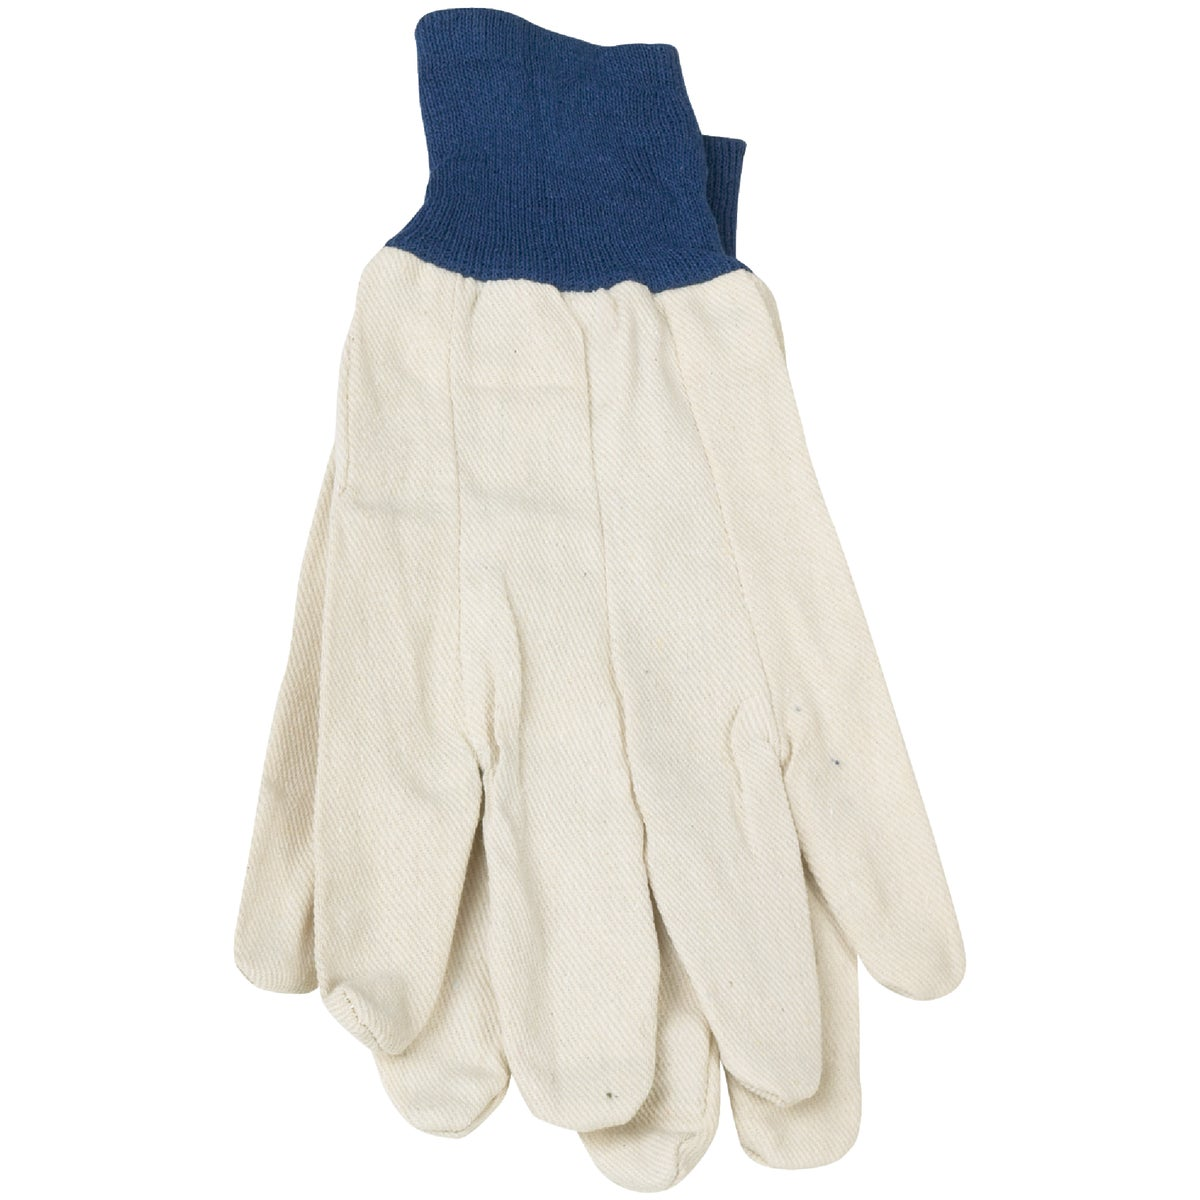 12PK MEN LRG CANVS GLOVE - 705687 by Do it Best